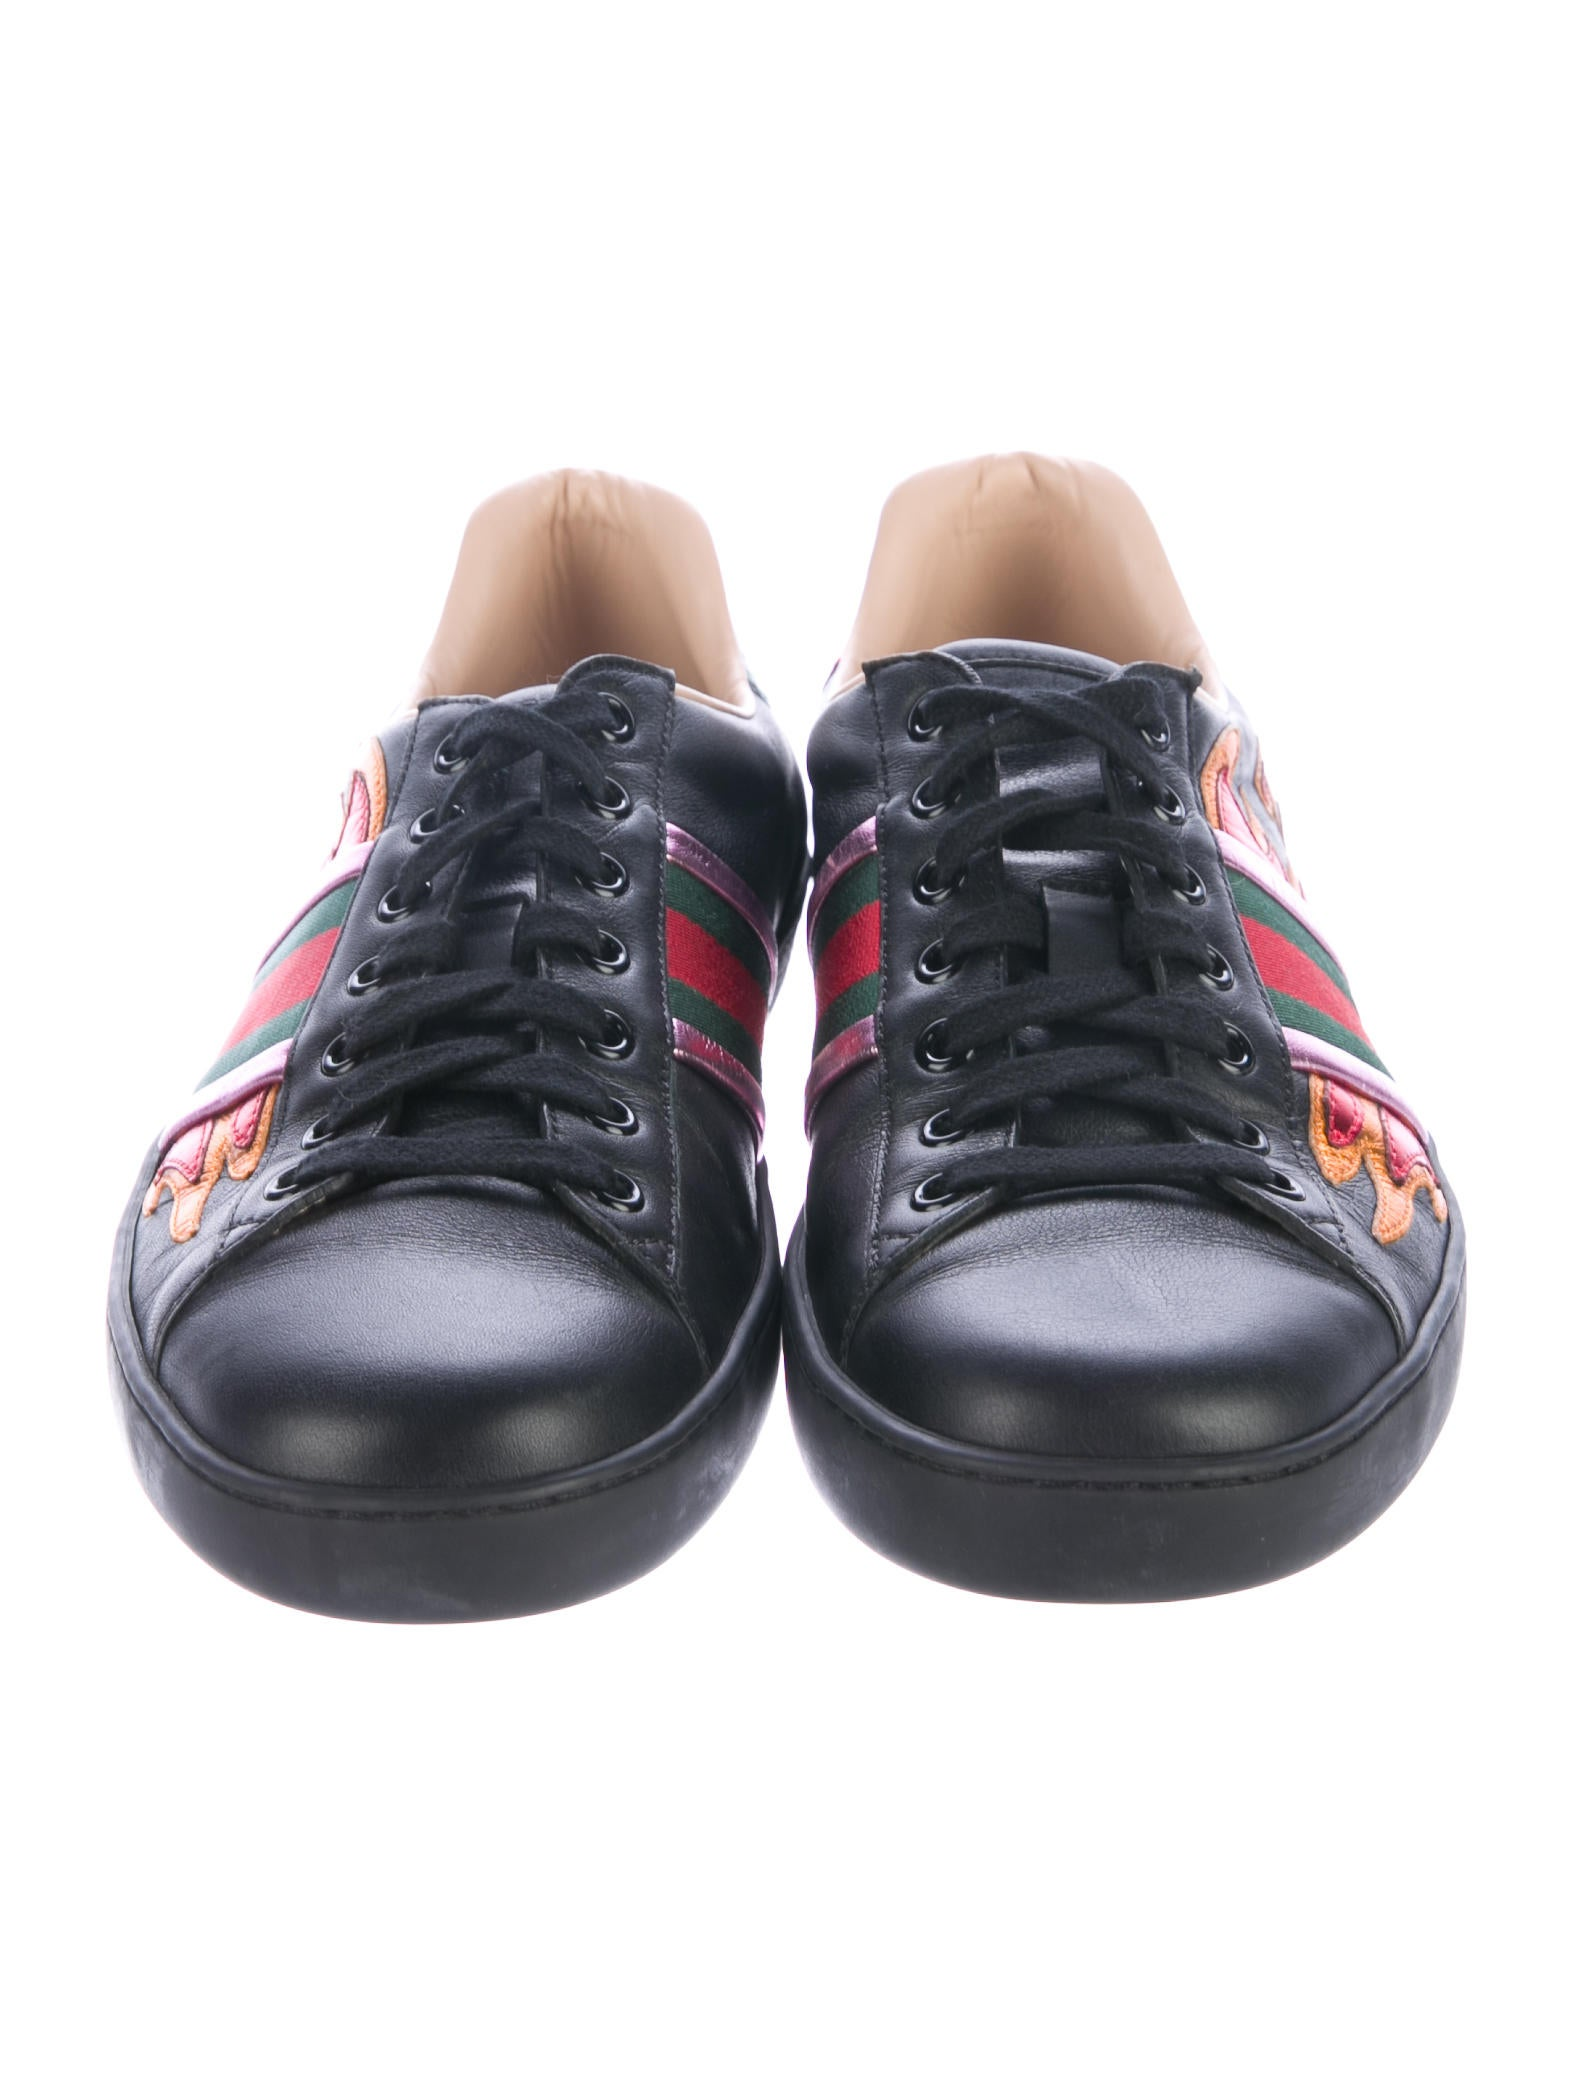 Gucci Flame Shoes Price